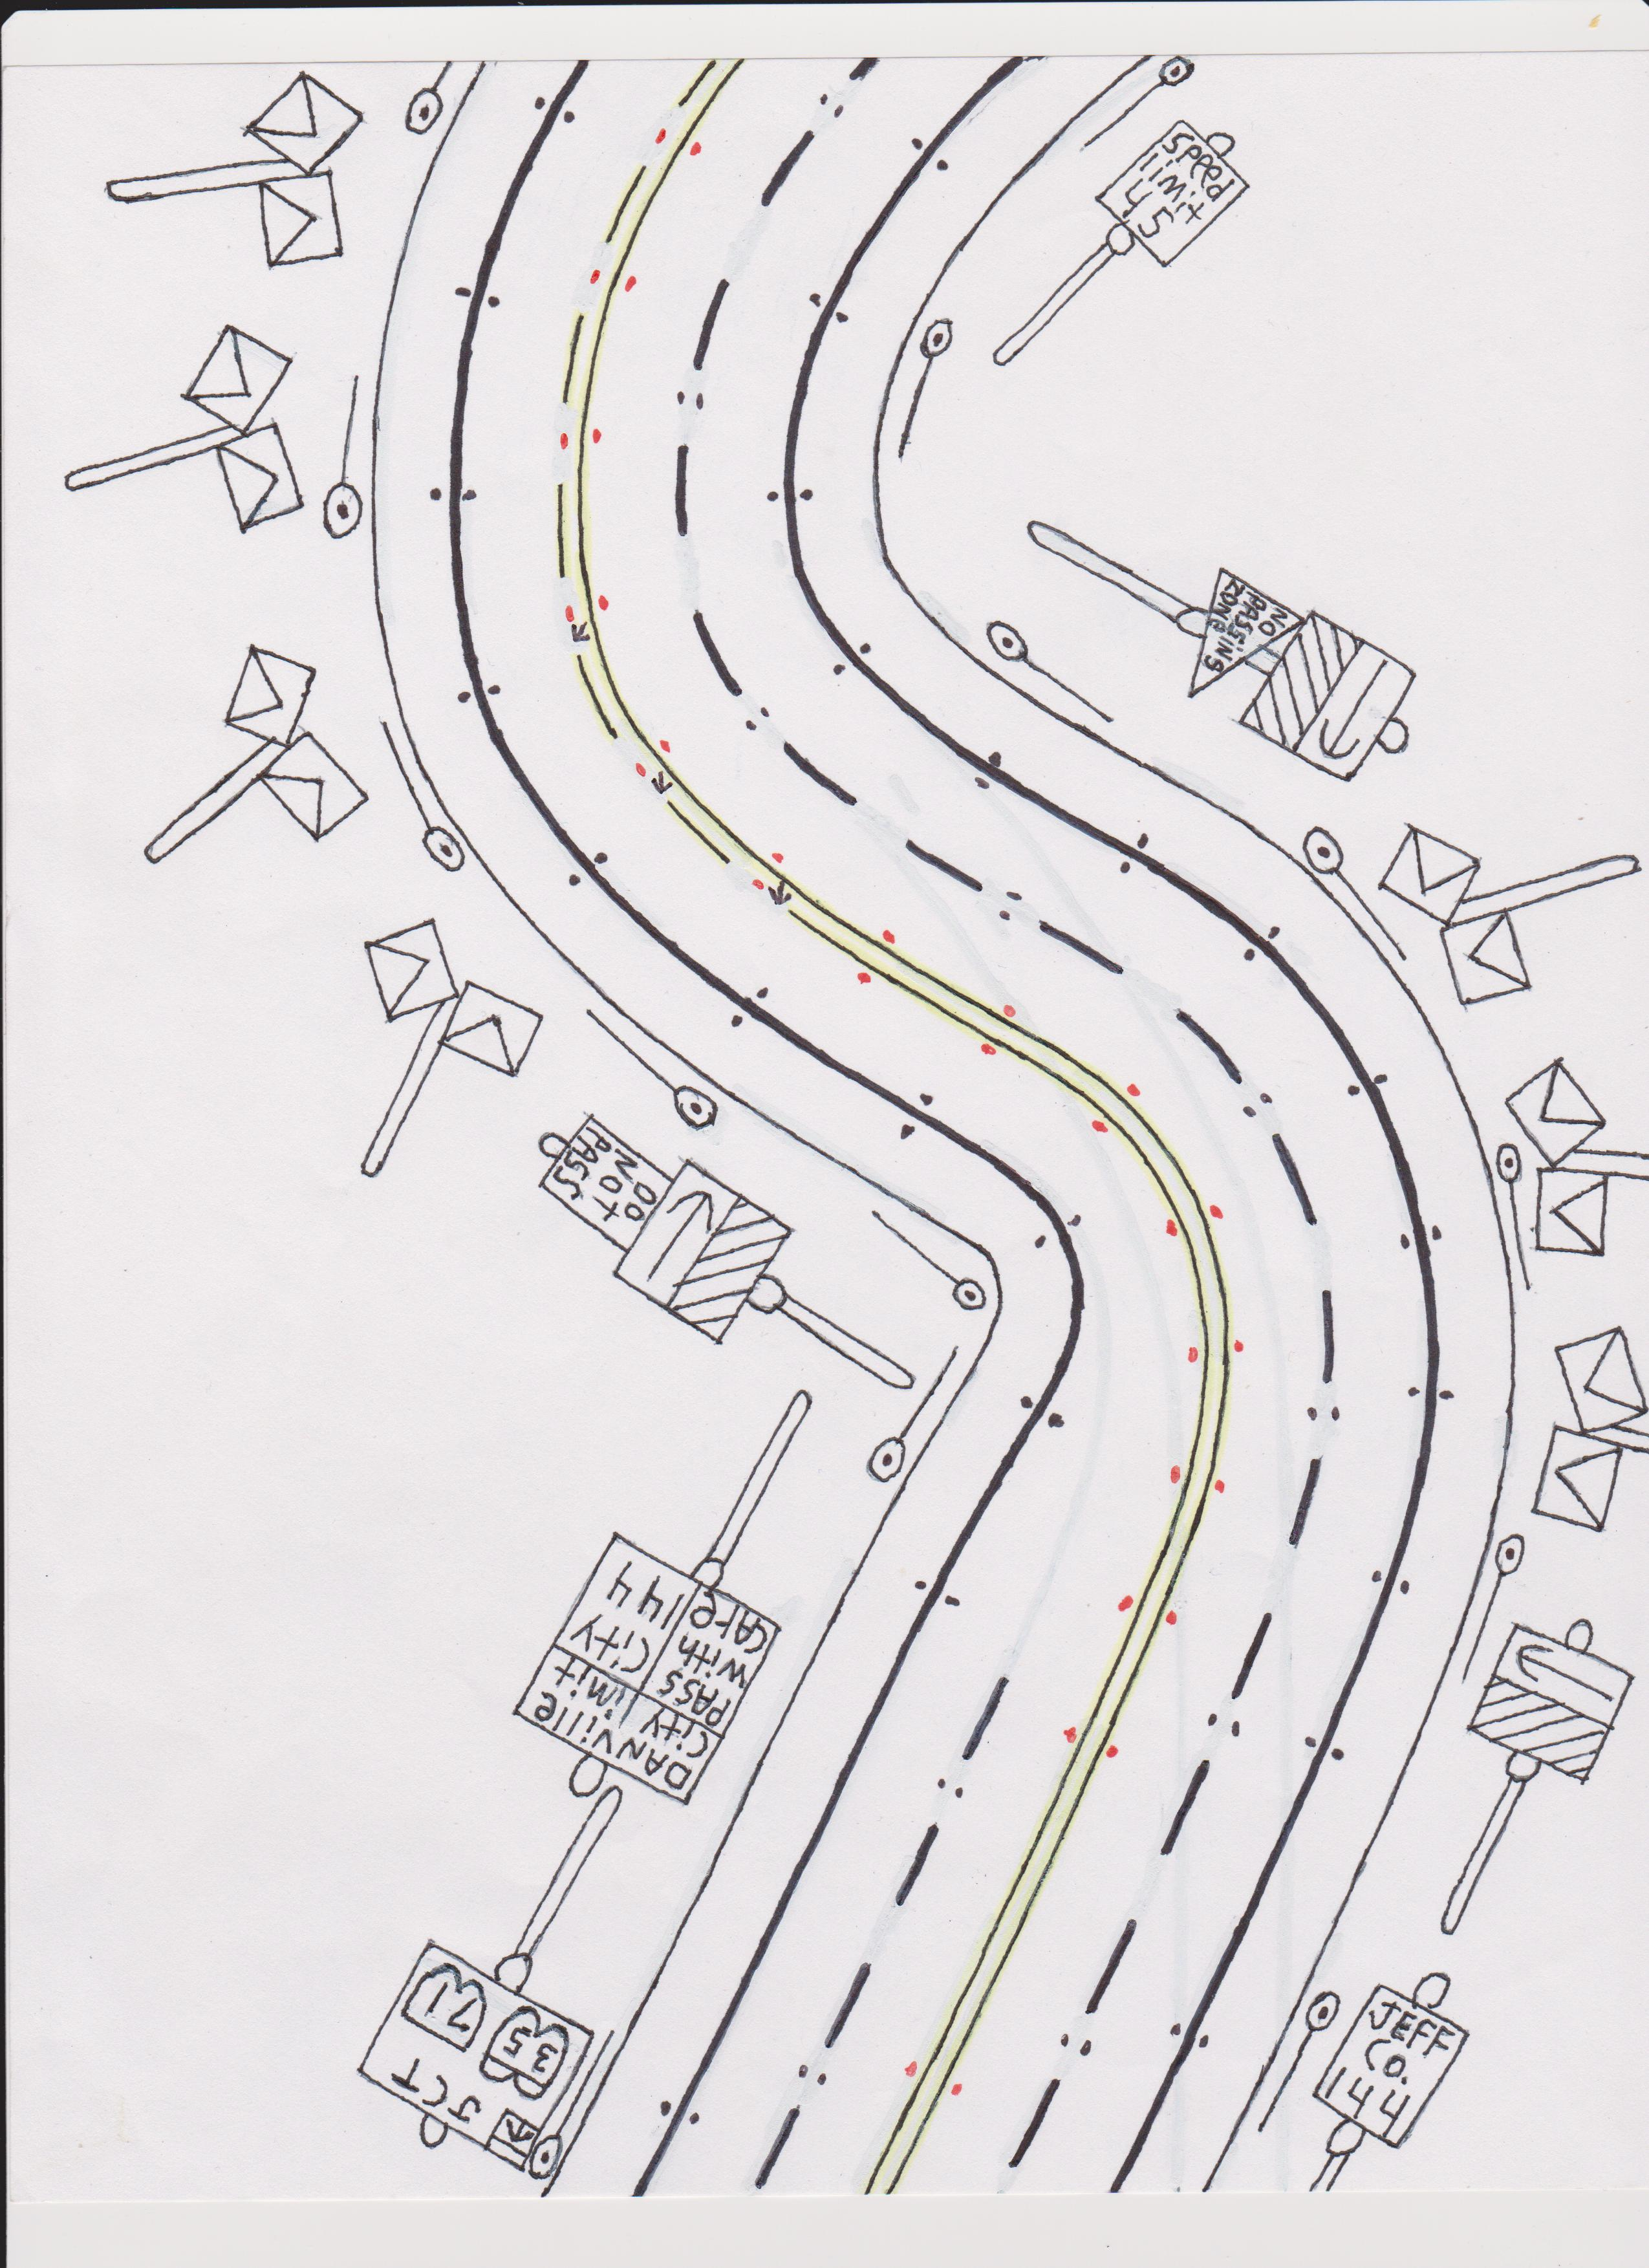 Drawn road Road Road Drawings Pinterest net